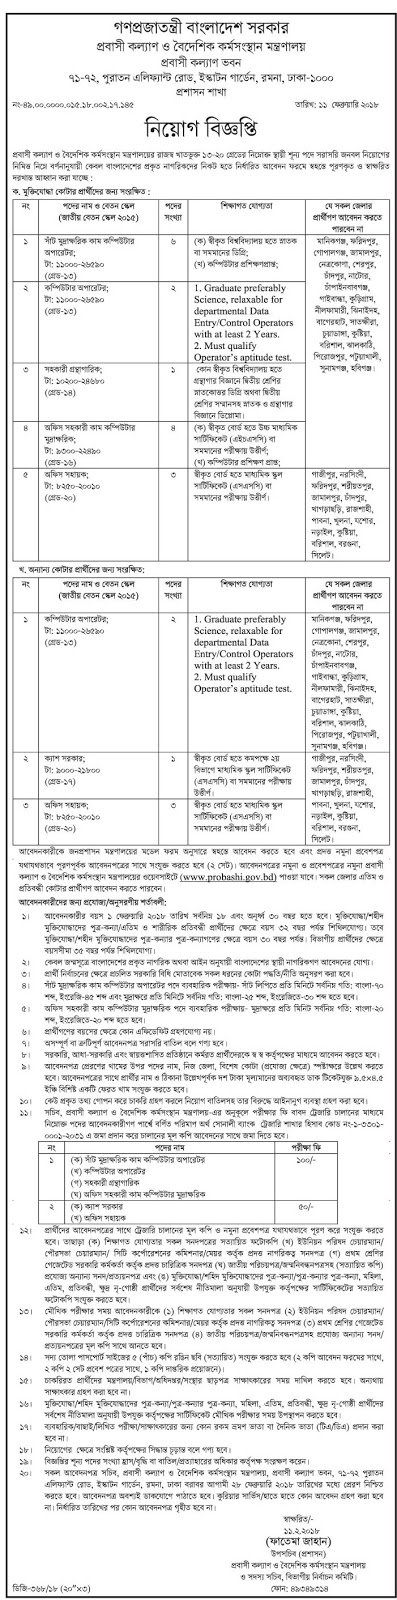 Ministry of Expatriates' Welfare and Overseas Employment Recruitment Apply Instruction, Educational Qualification, Salary, Application Fee, Age and Other Information